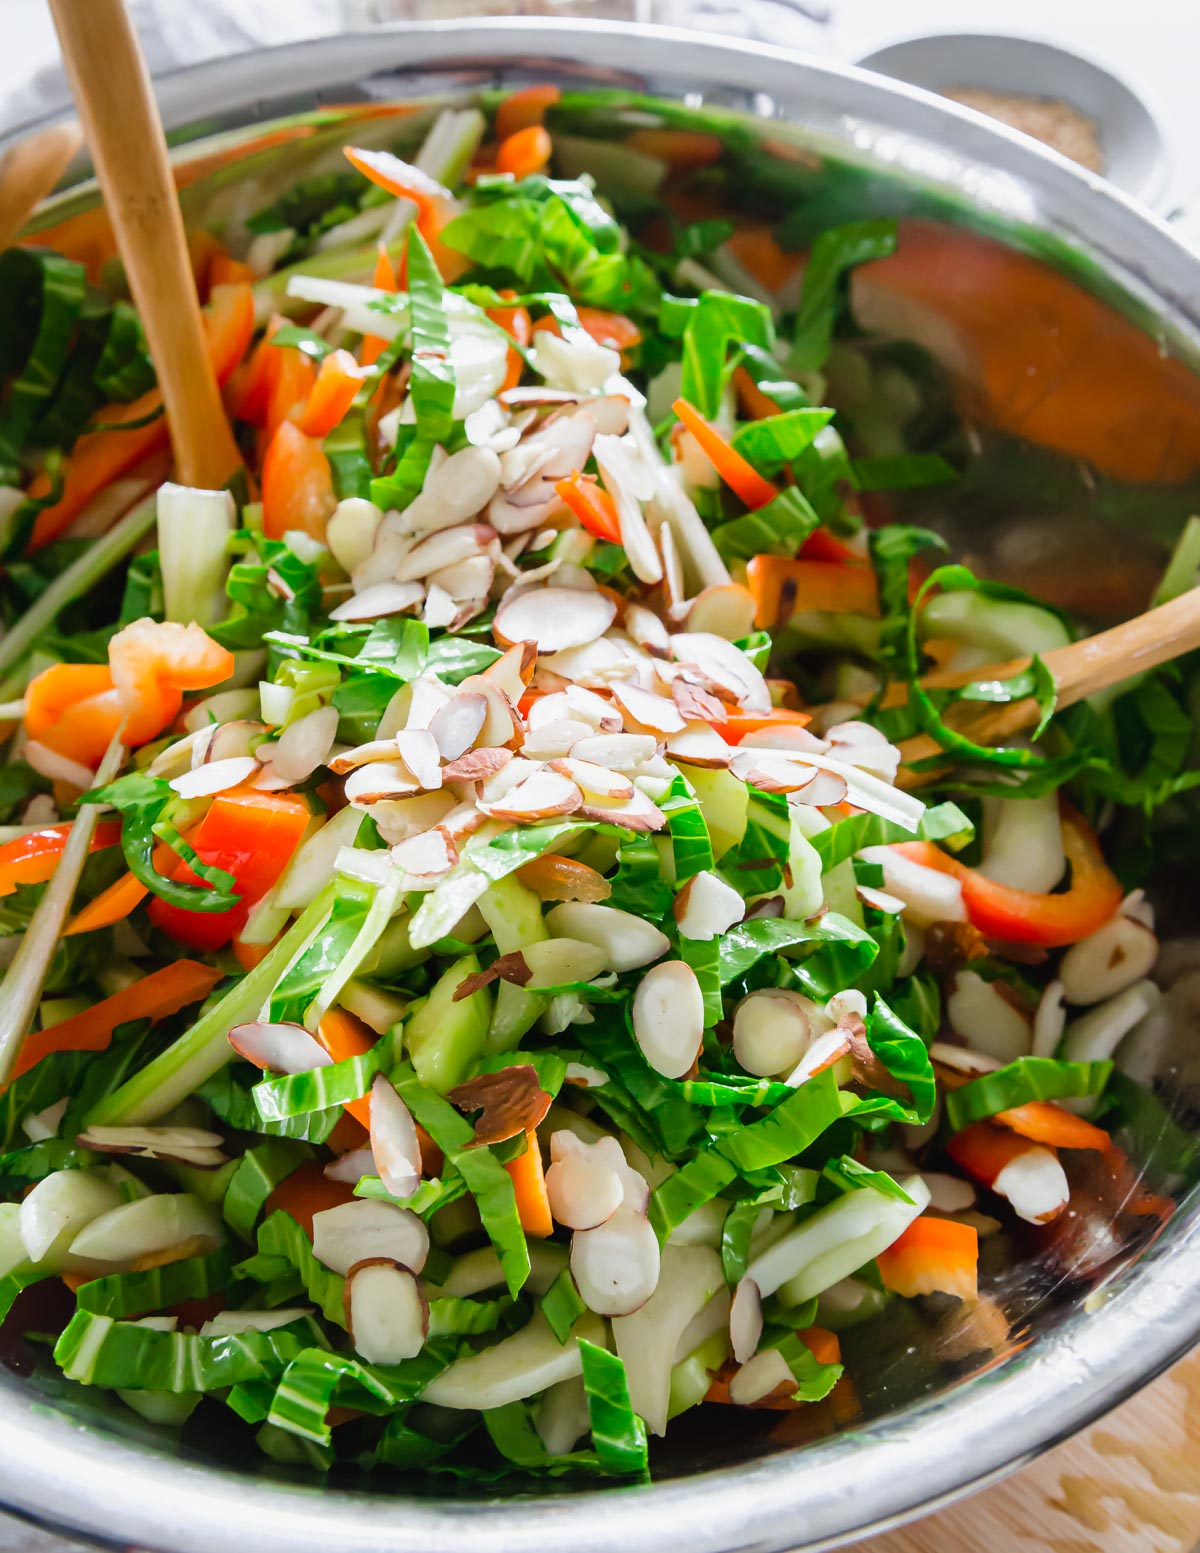 Sliced almonds top this baby bok choy salad for some extra crunch and flavor.